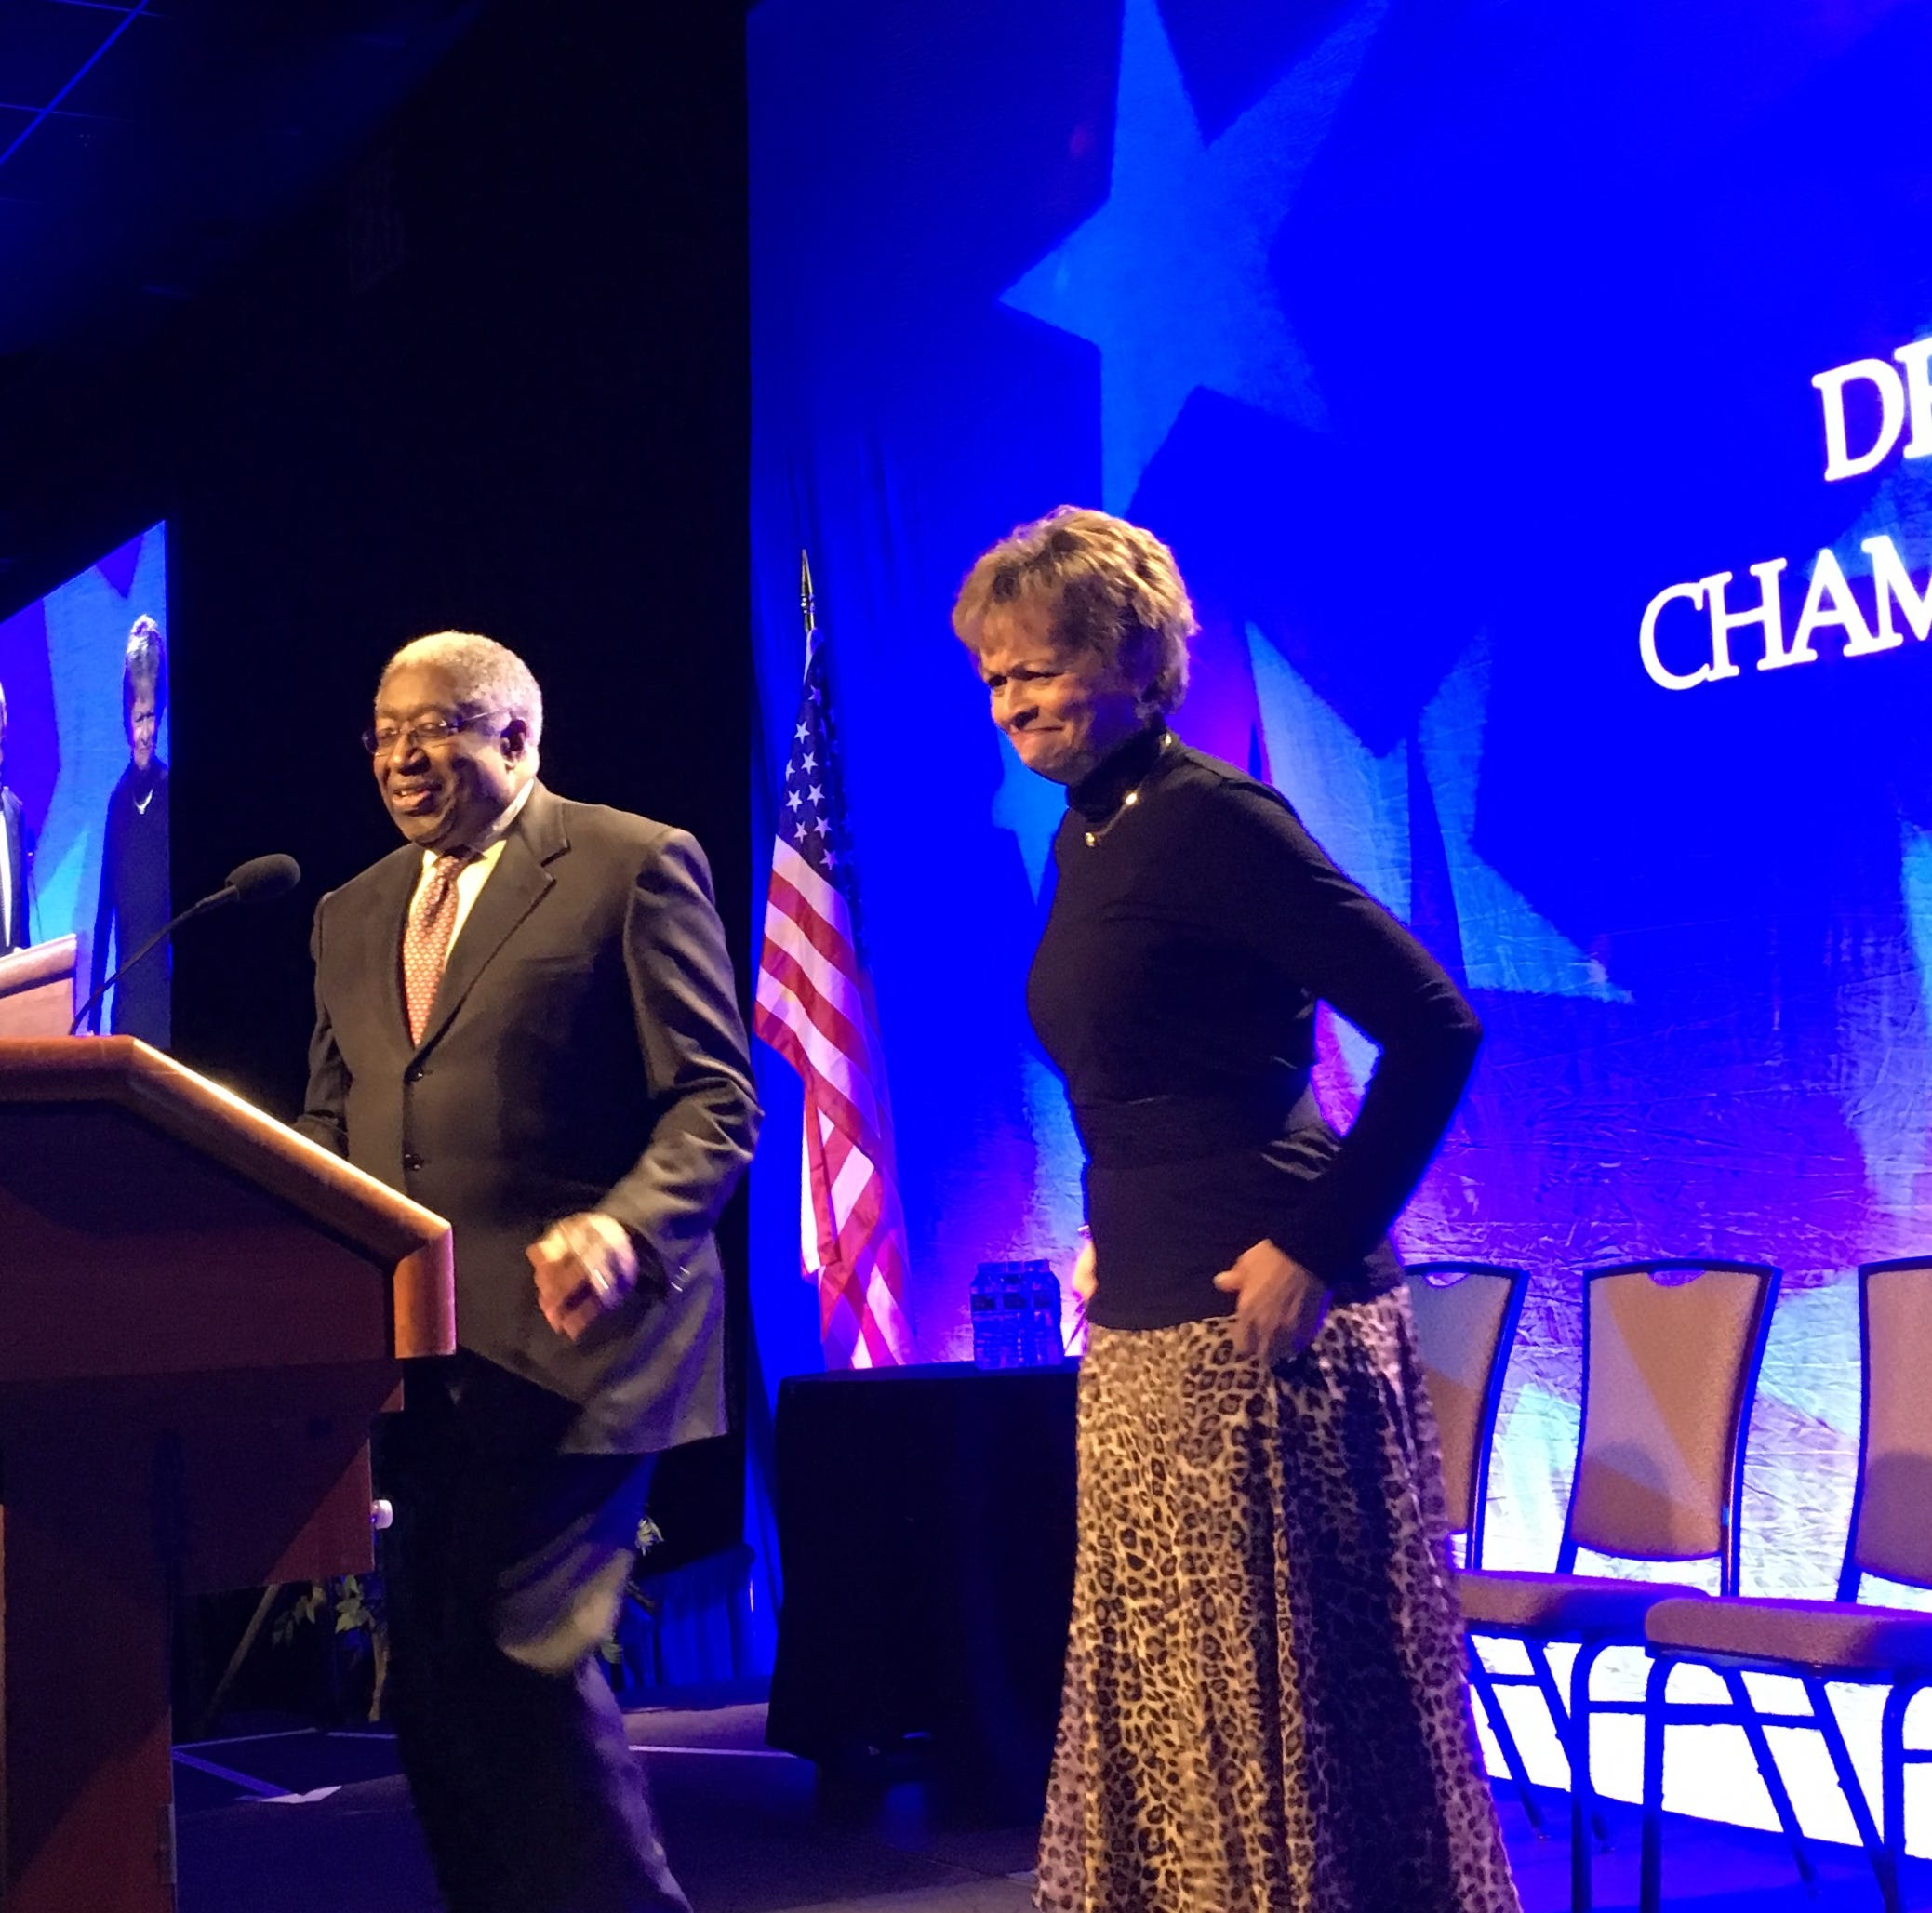 Longtime Delaware power couple wins prestigious Chamber of Commerce award